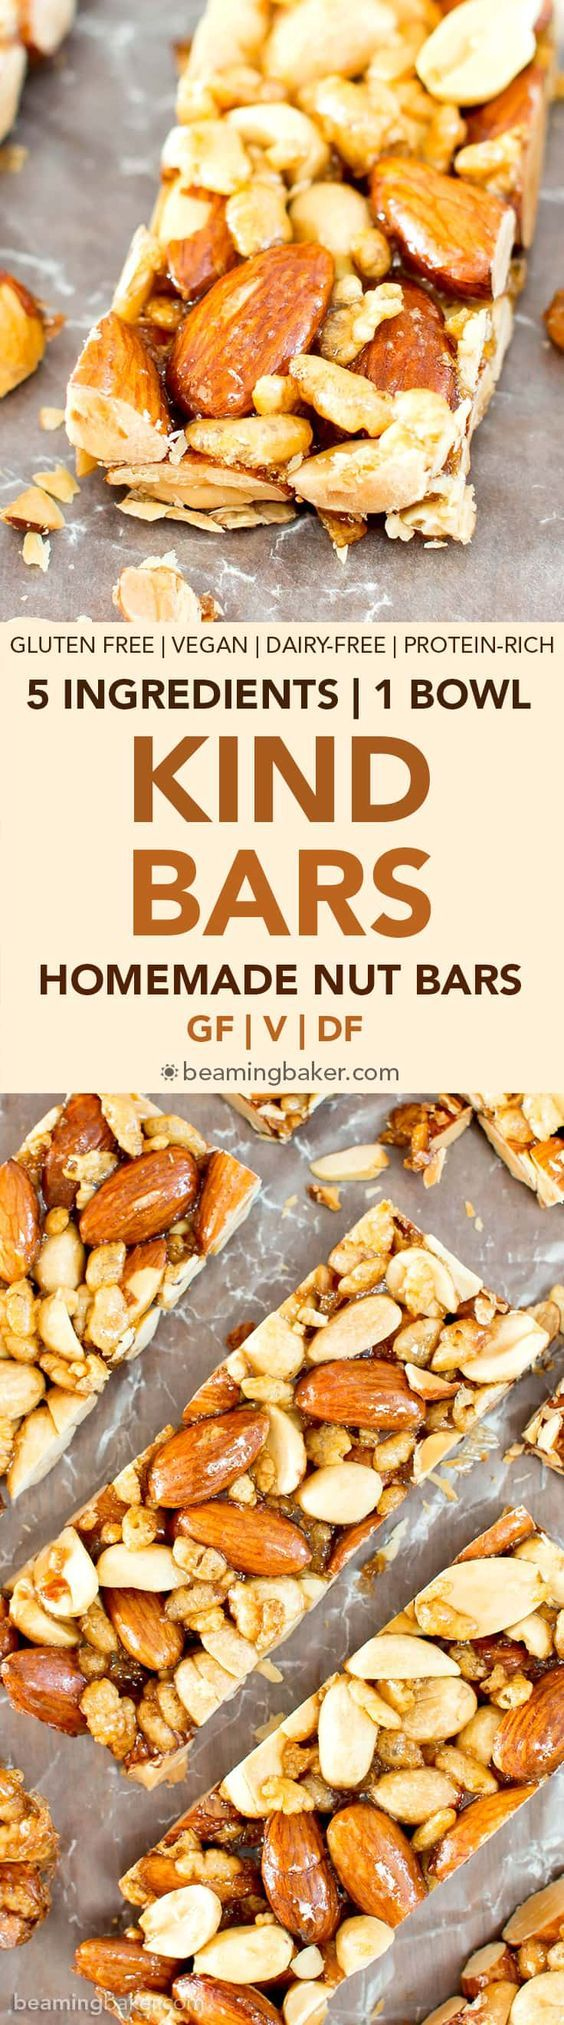 5 Ingredient Homemade KIND Nut Bars (V, GF, DF): an easy, one bowl recipe for irresistibly salty and sweet homemade KIND bars. | Posted By: DebbieNet.com